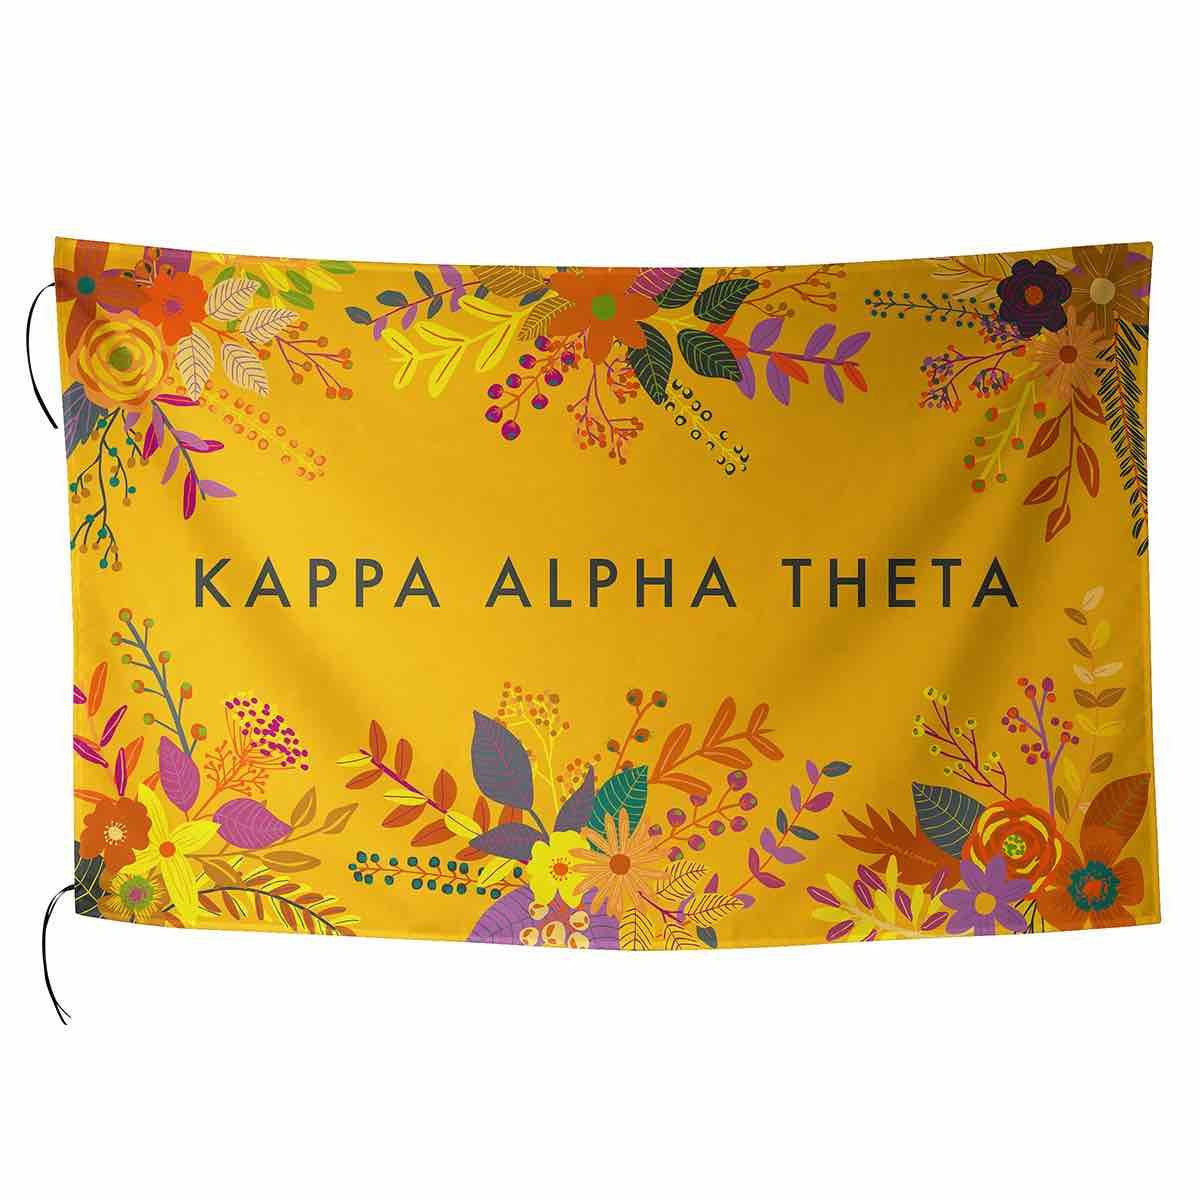 Kappa Alpha Theta Flag in pretty pink with tropical palm leaves and sorority name in cursive.